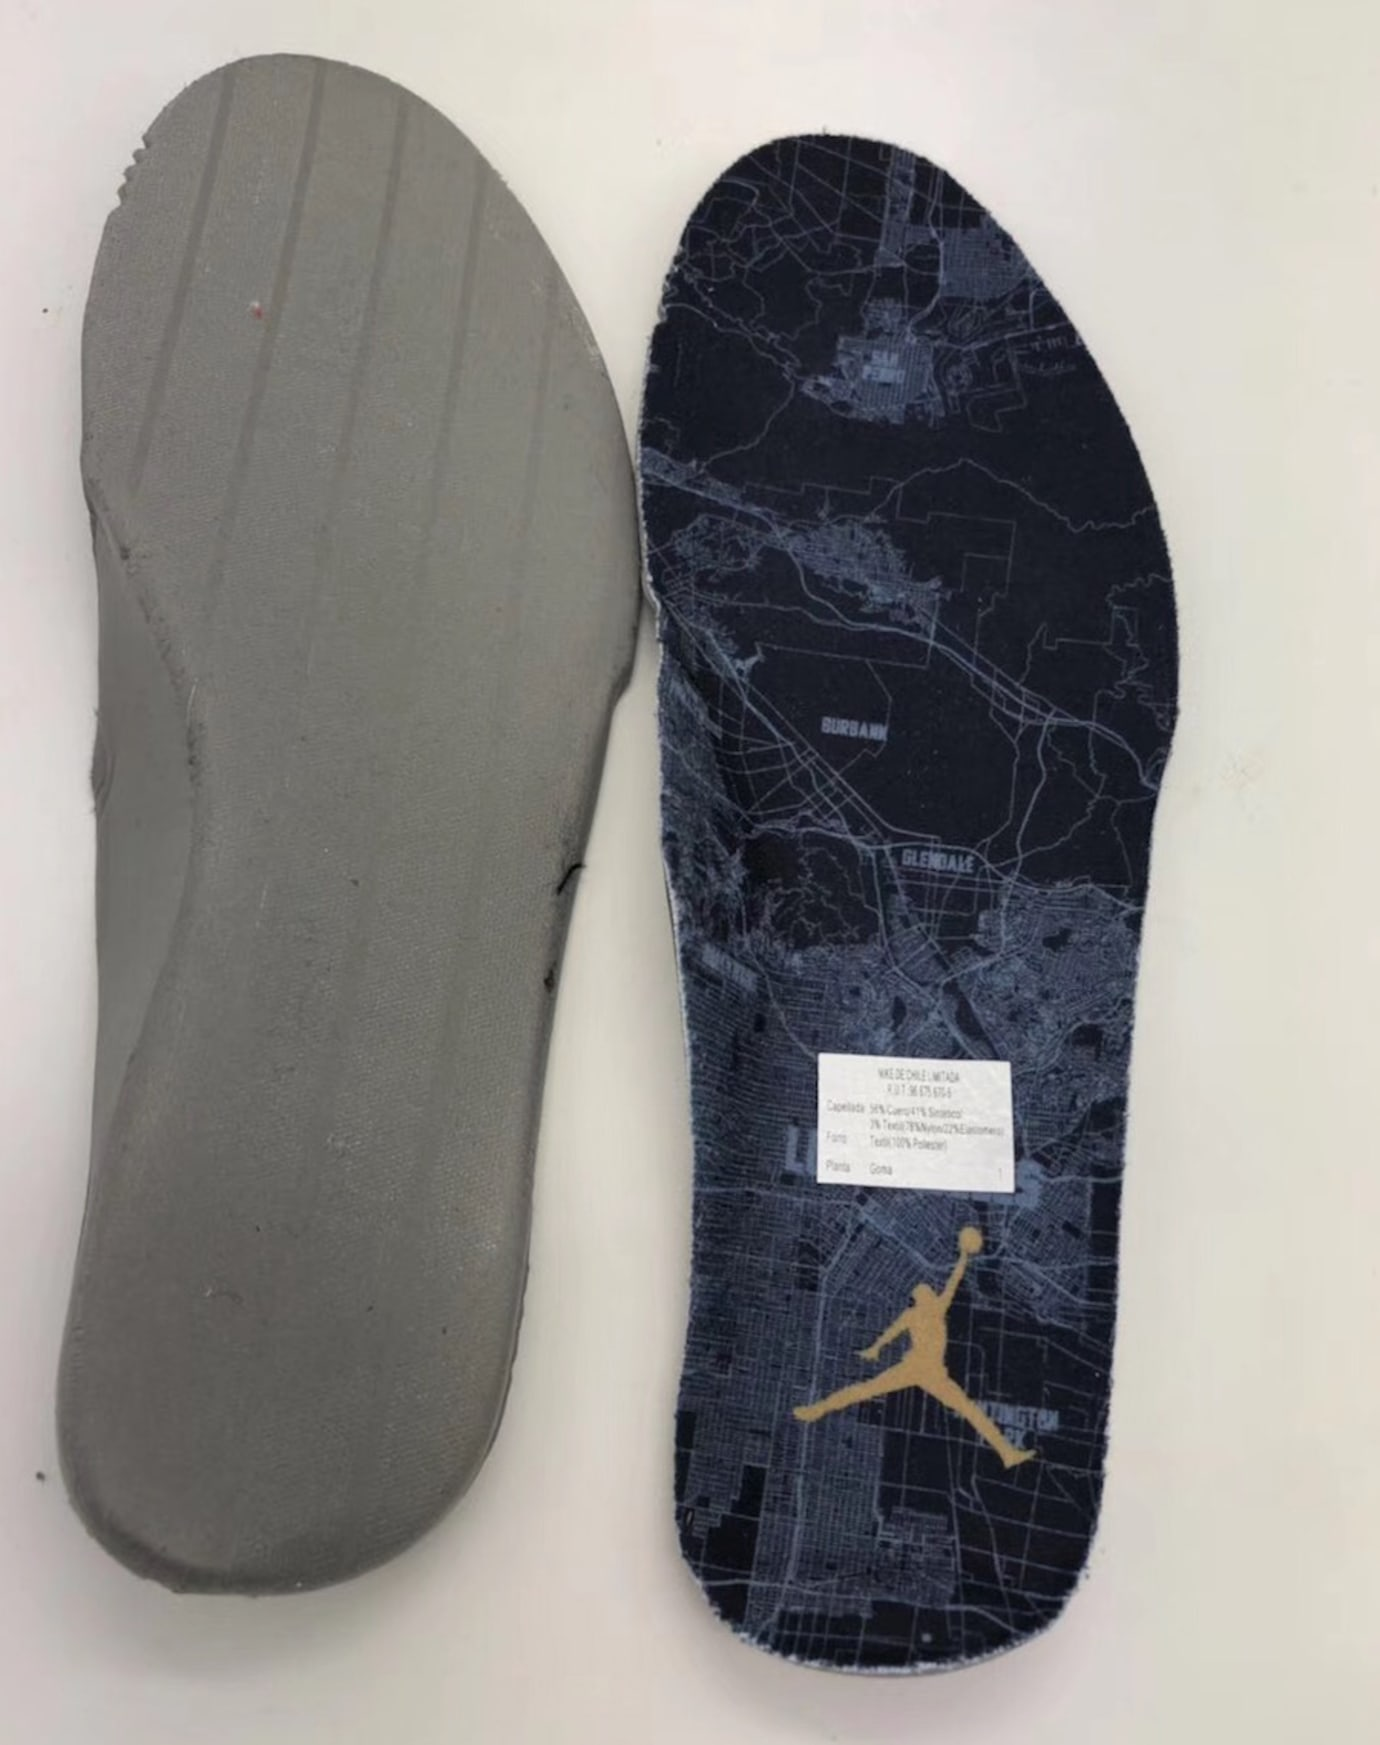 Air Jordan 9 IX Los Angeles All-Star Release Date Insole 302370-021